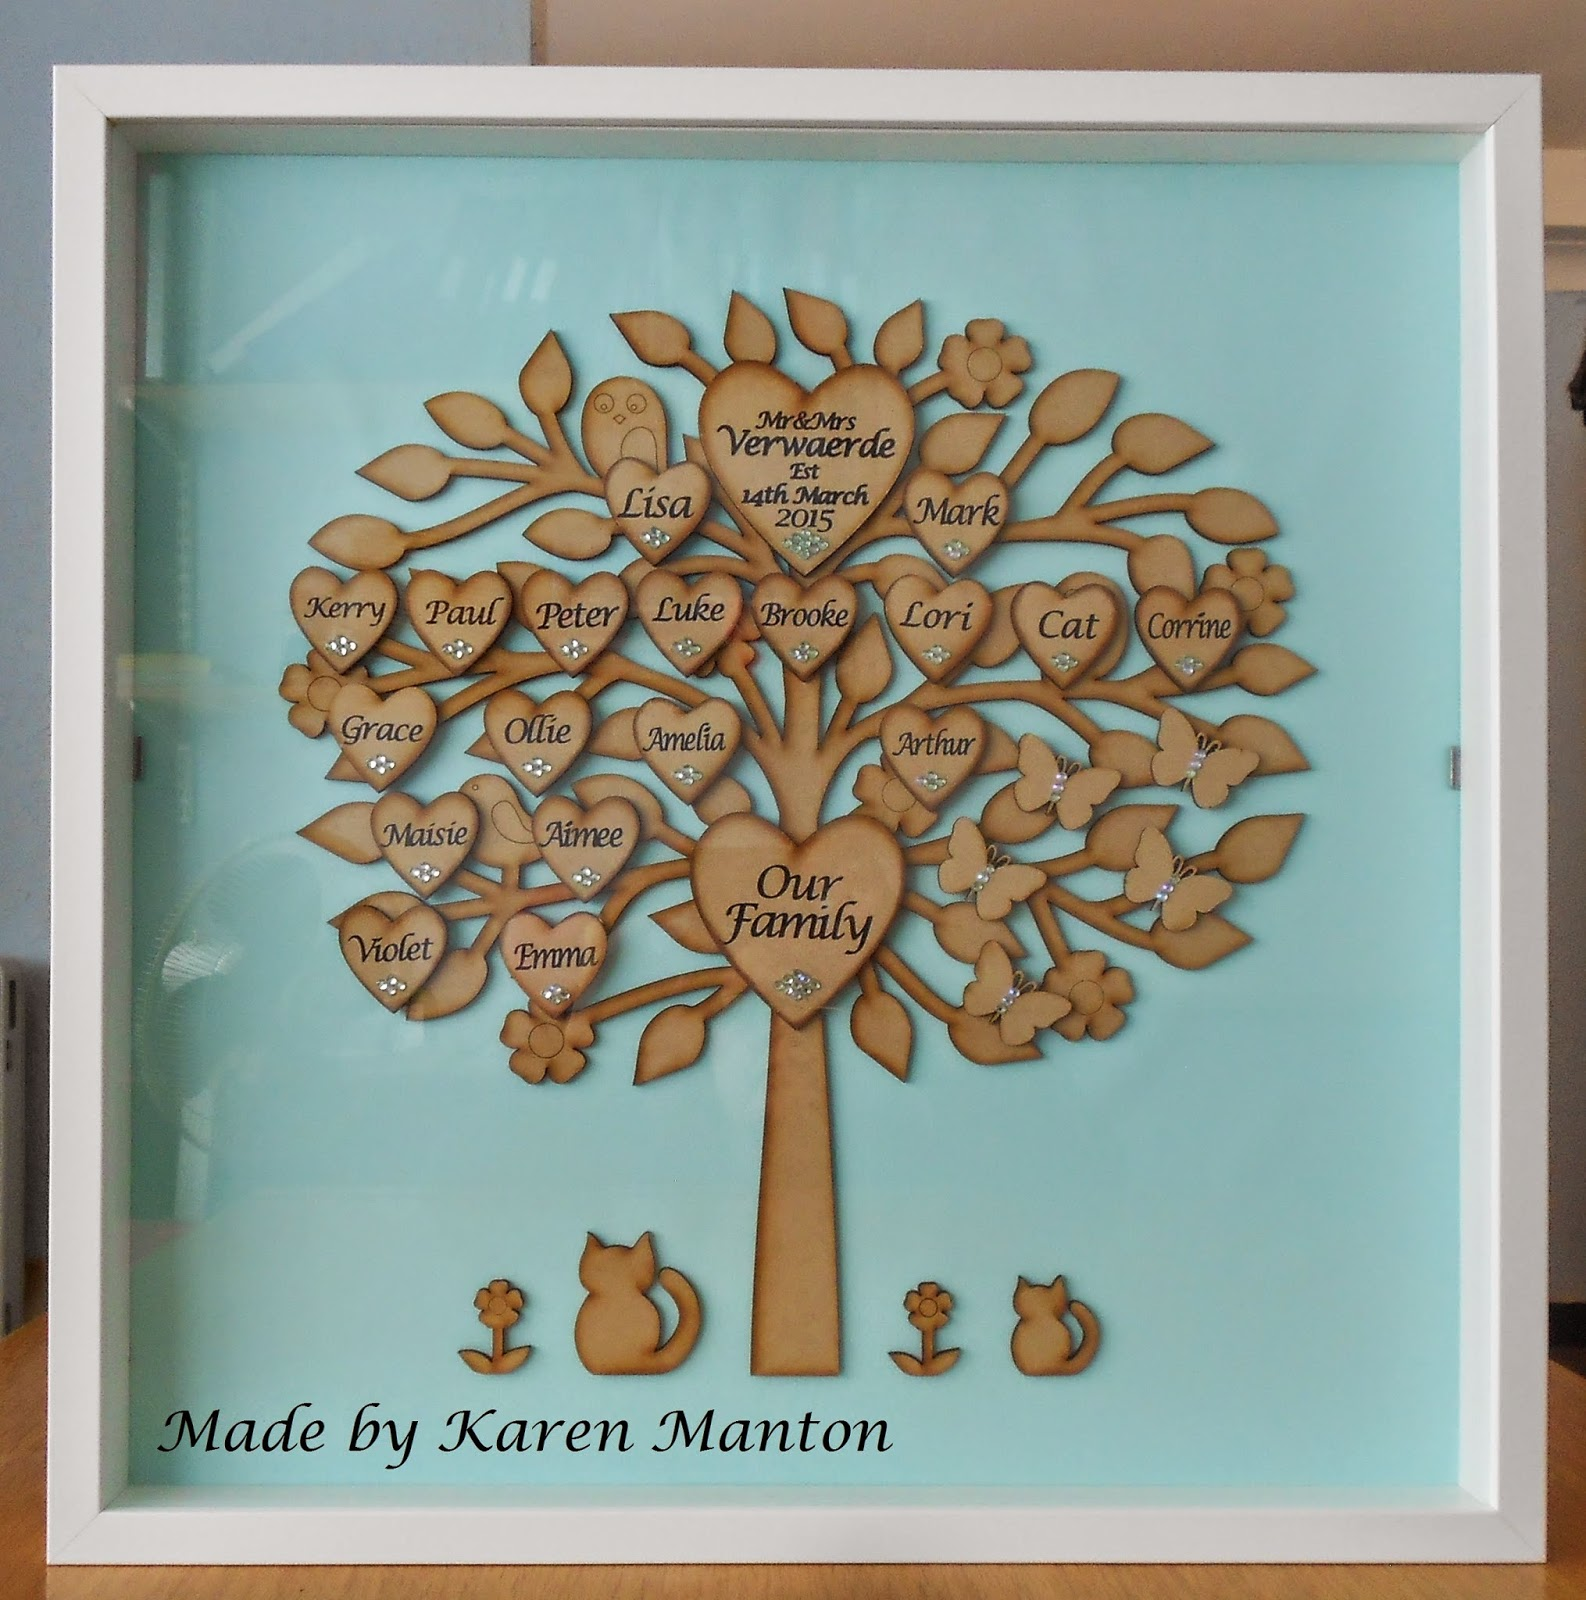 Glue Glitter And An Idea Large Family Tree Silhouette Cameo